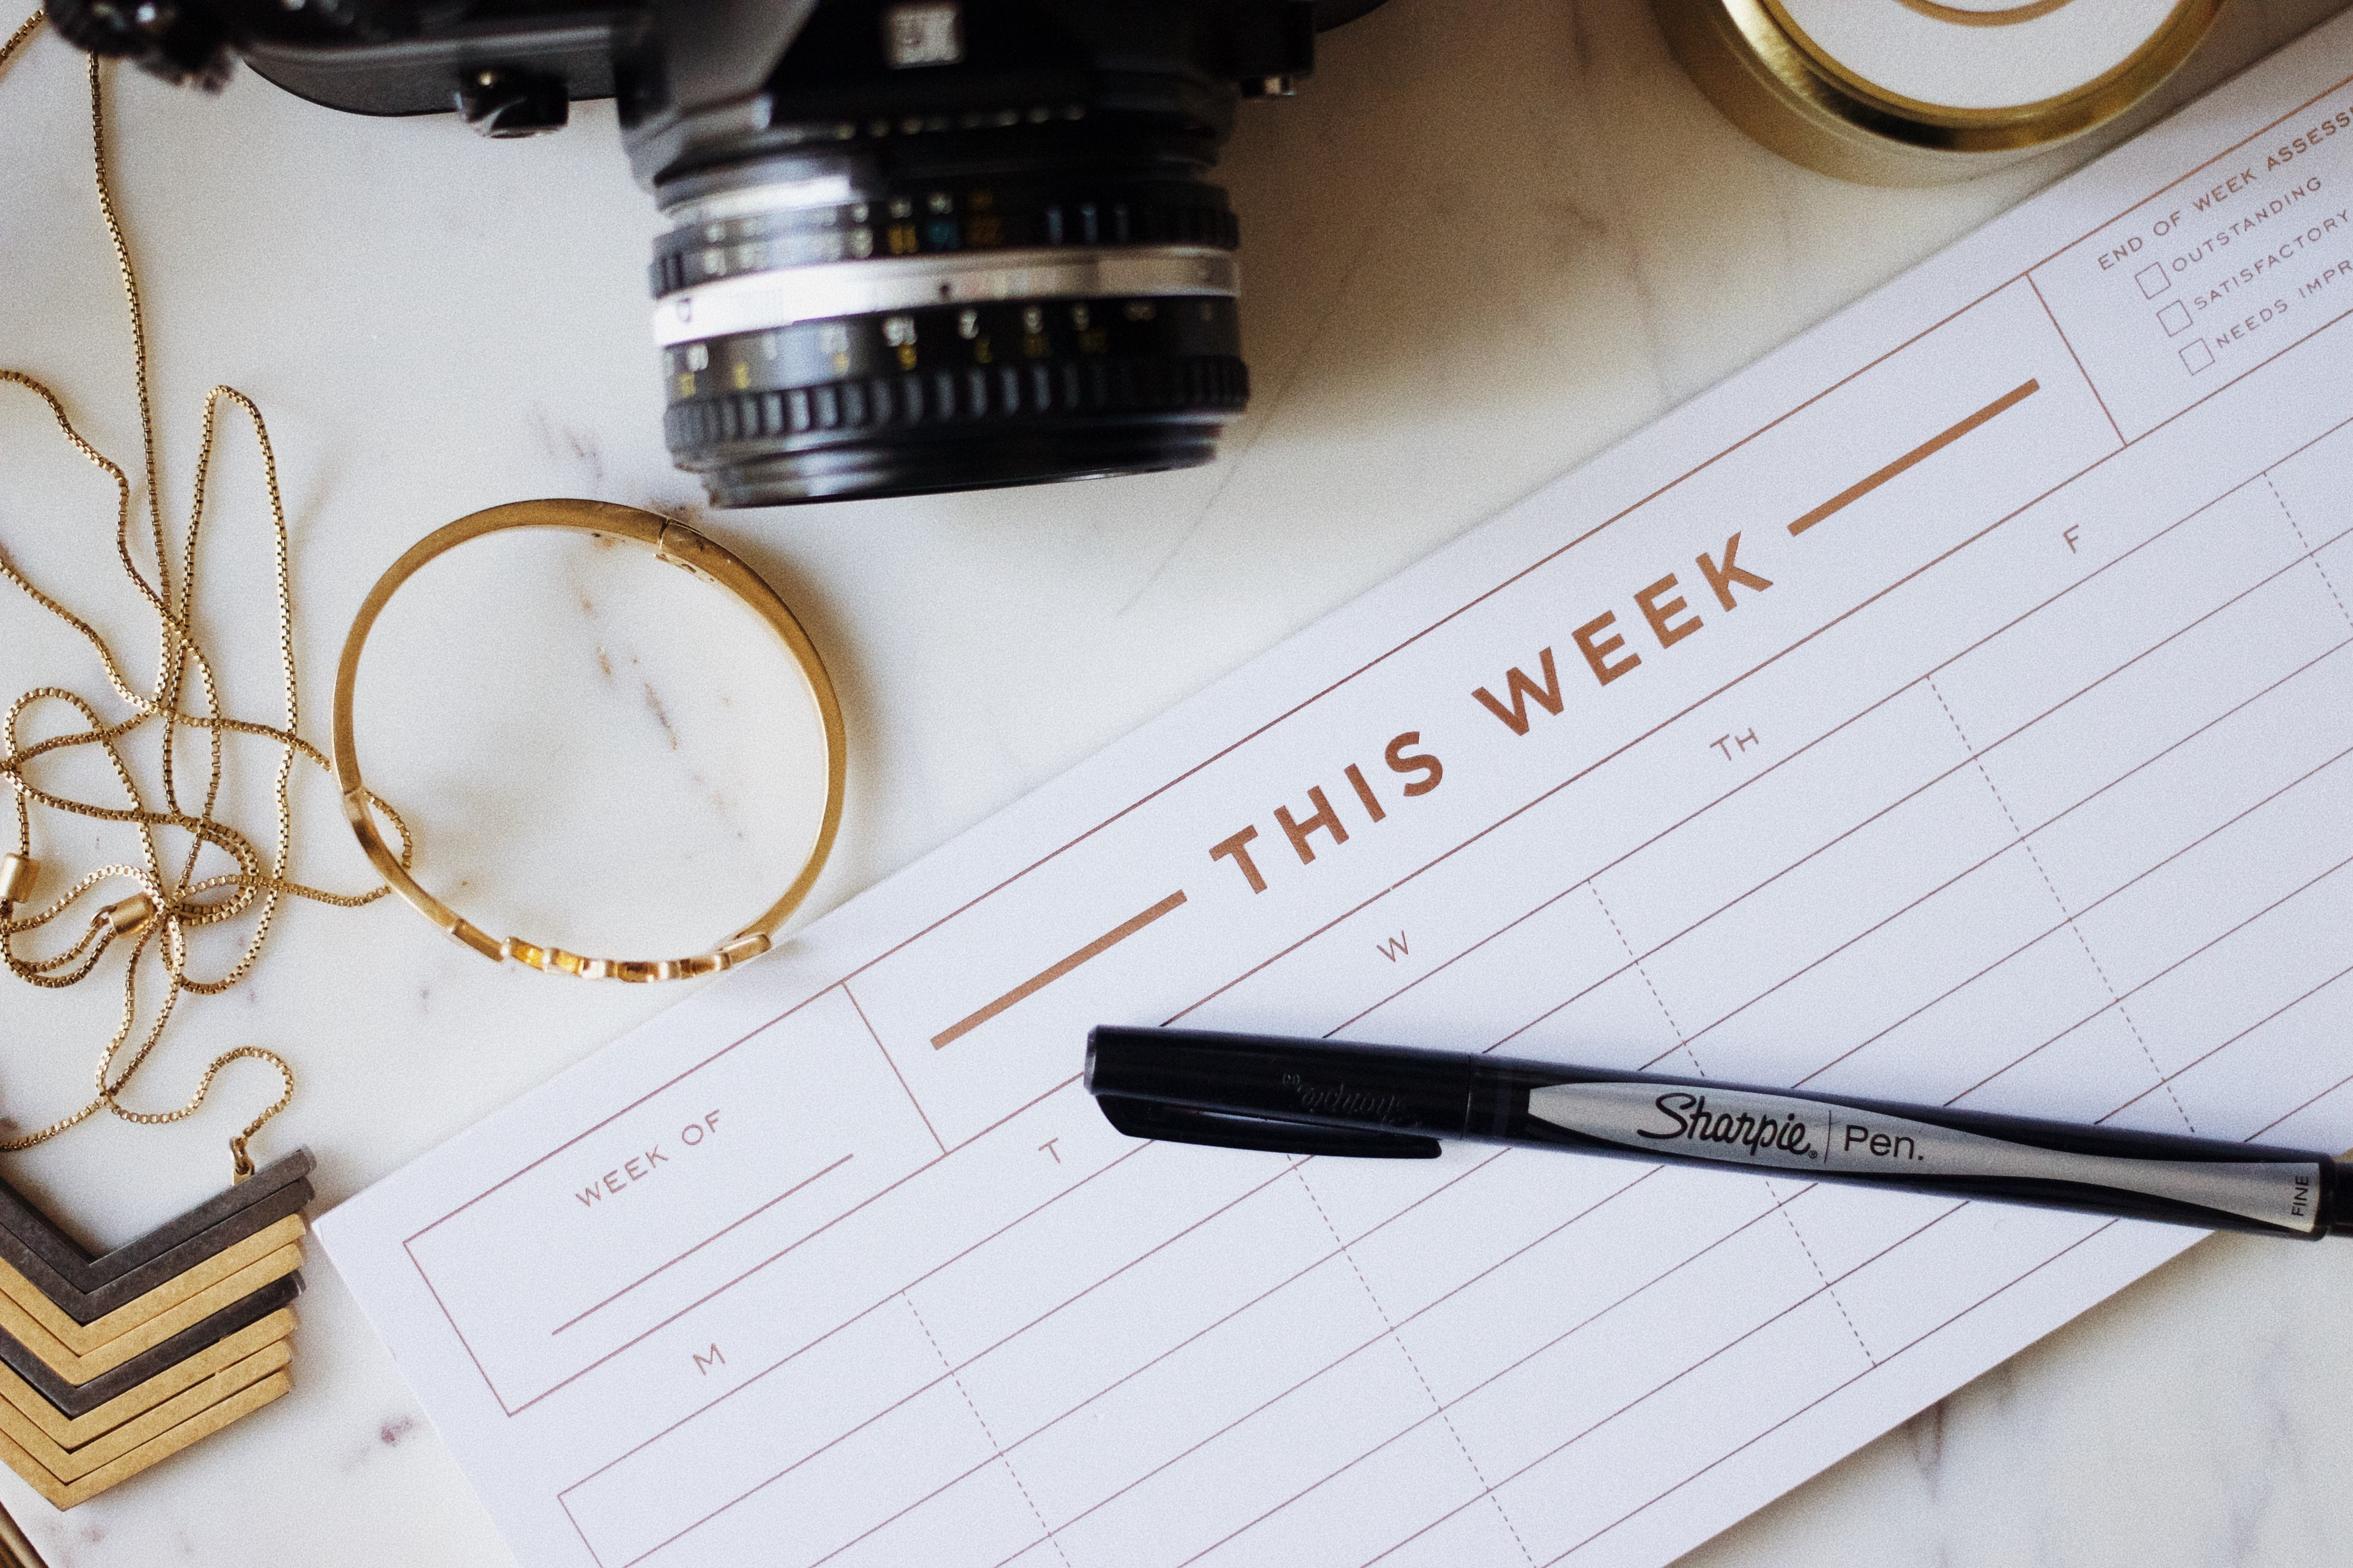 Weekly Calendar with pen — Photo by Jazmin Quaynor on Unsplash